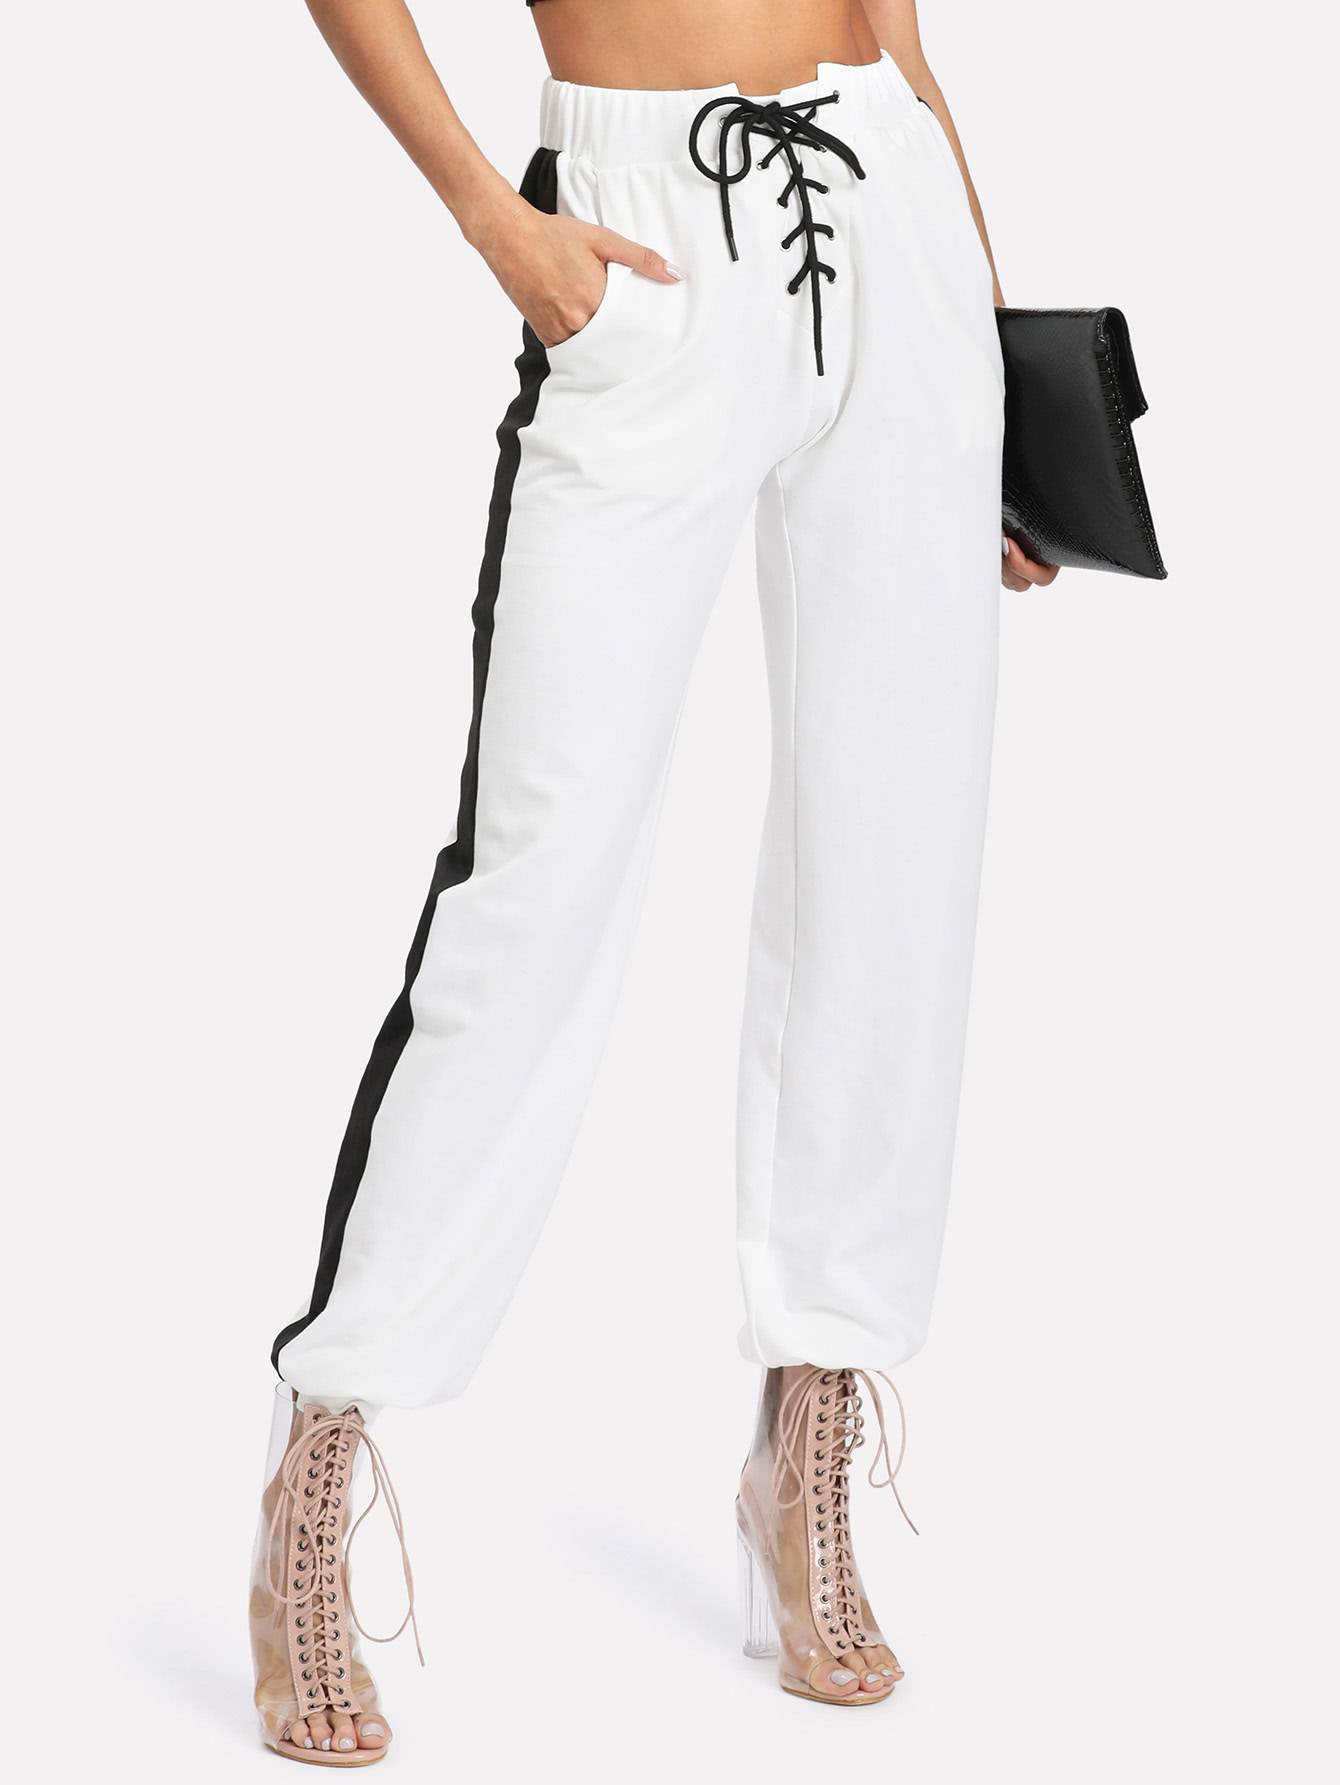 Lace Up Front Contrast Panel Sweatpants -SheIn(Sheinside)